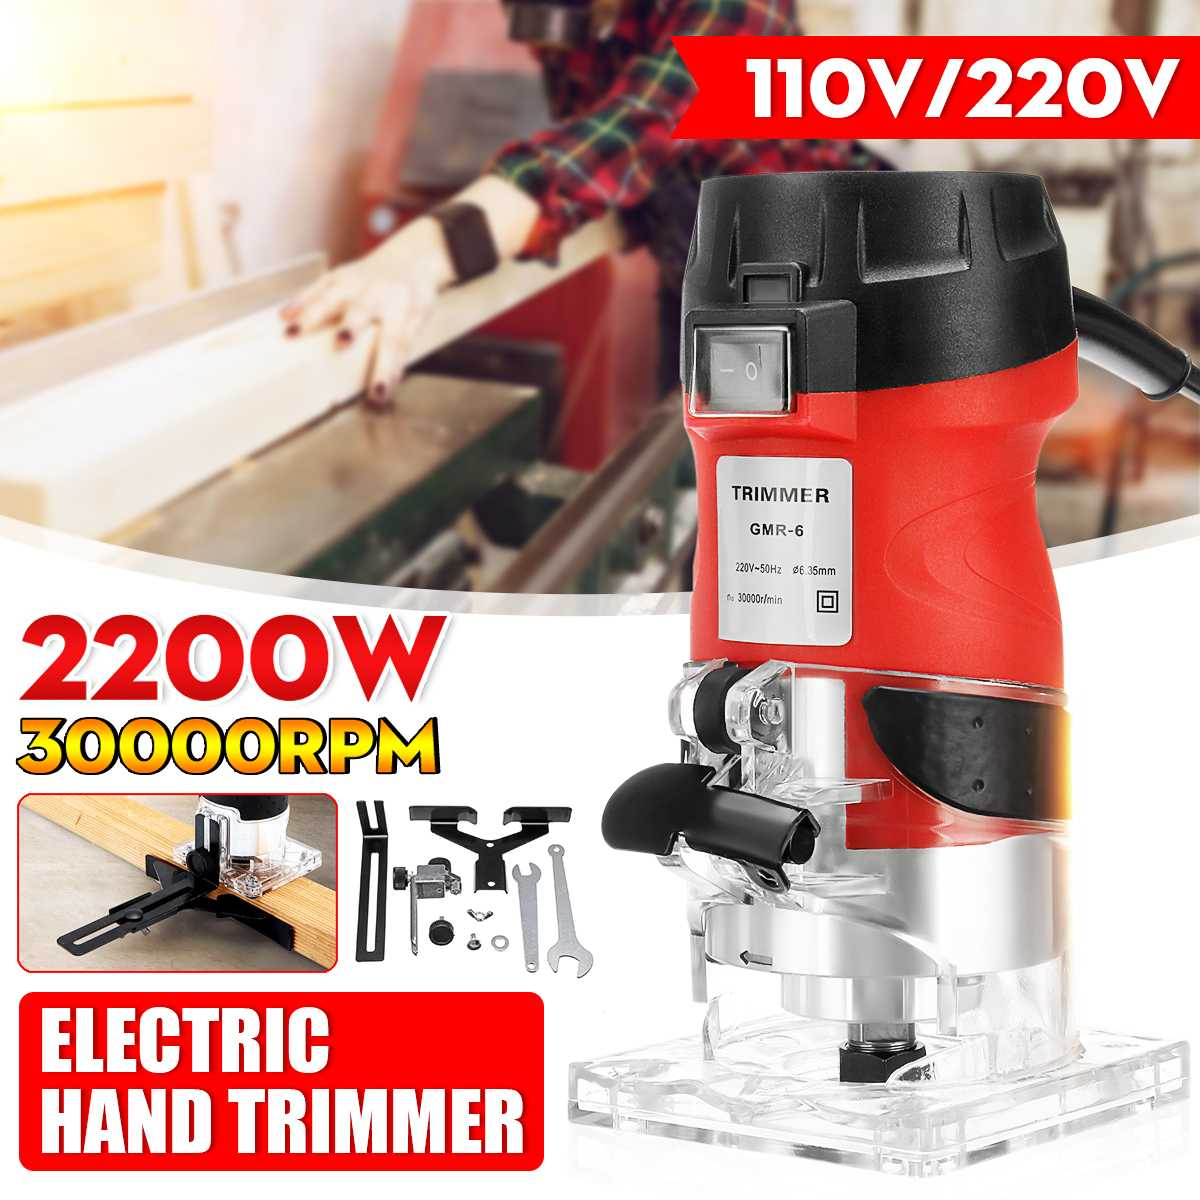 2200W 6.35mm 30000RPM Electric Hand Trimmer Wood Laminate Palms Router Joiners Woodwork Trimming Cutting Power Tool 5 Colors